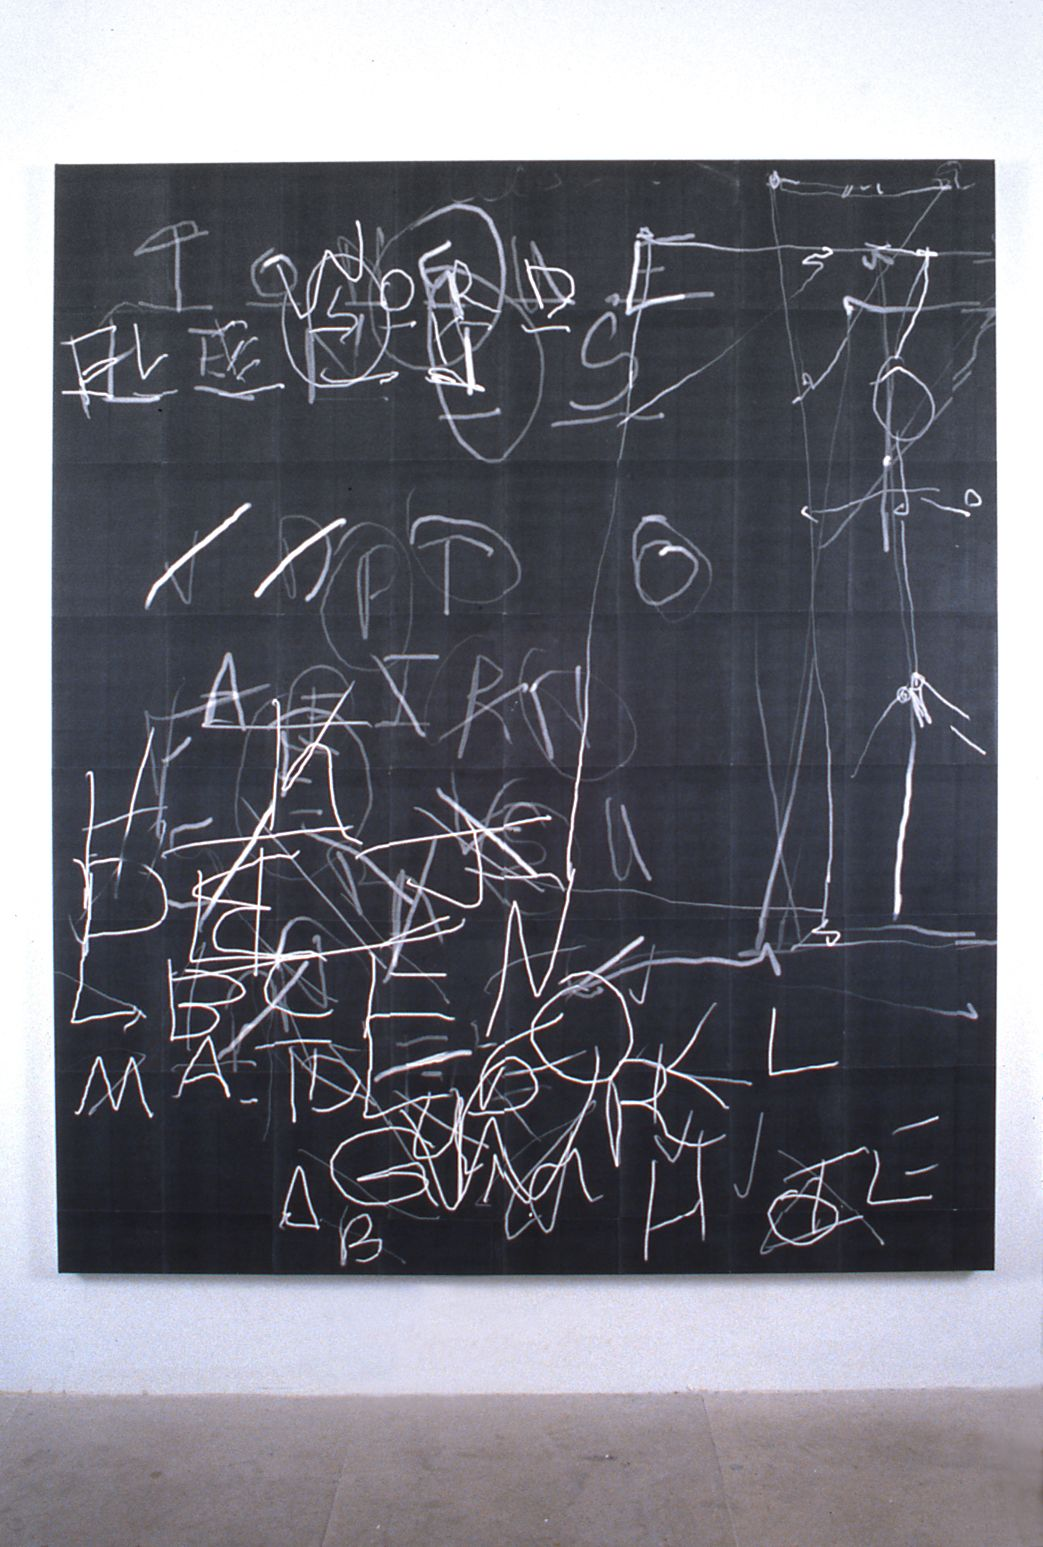 Luke Murphy, Bad Game, 1996, laser prints, acrylic mediums on canvas, 78 x 66 inches